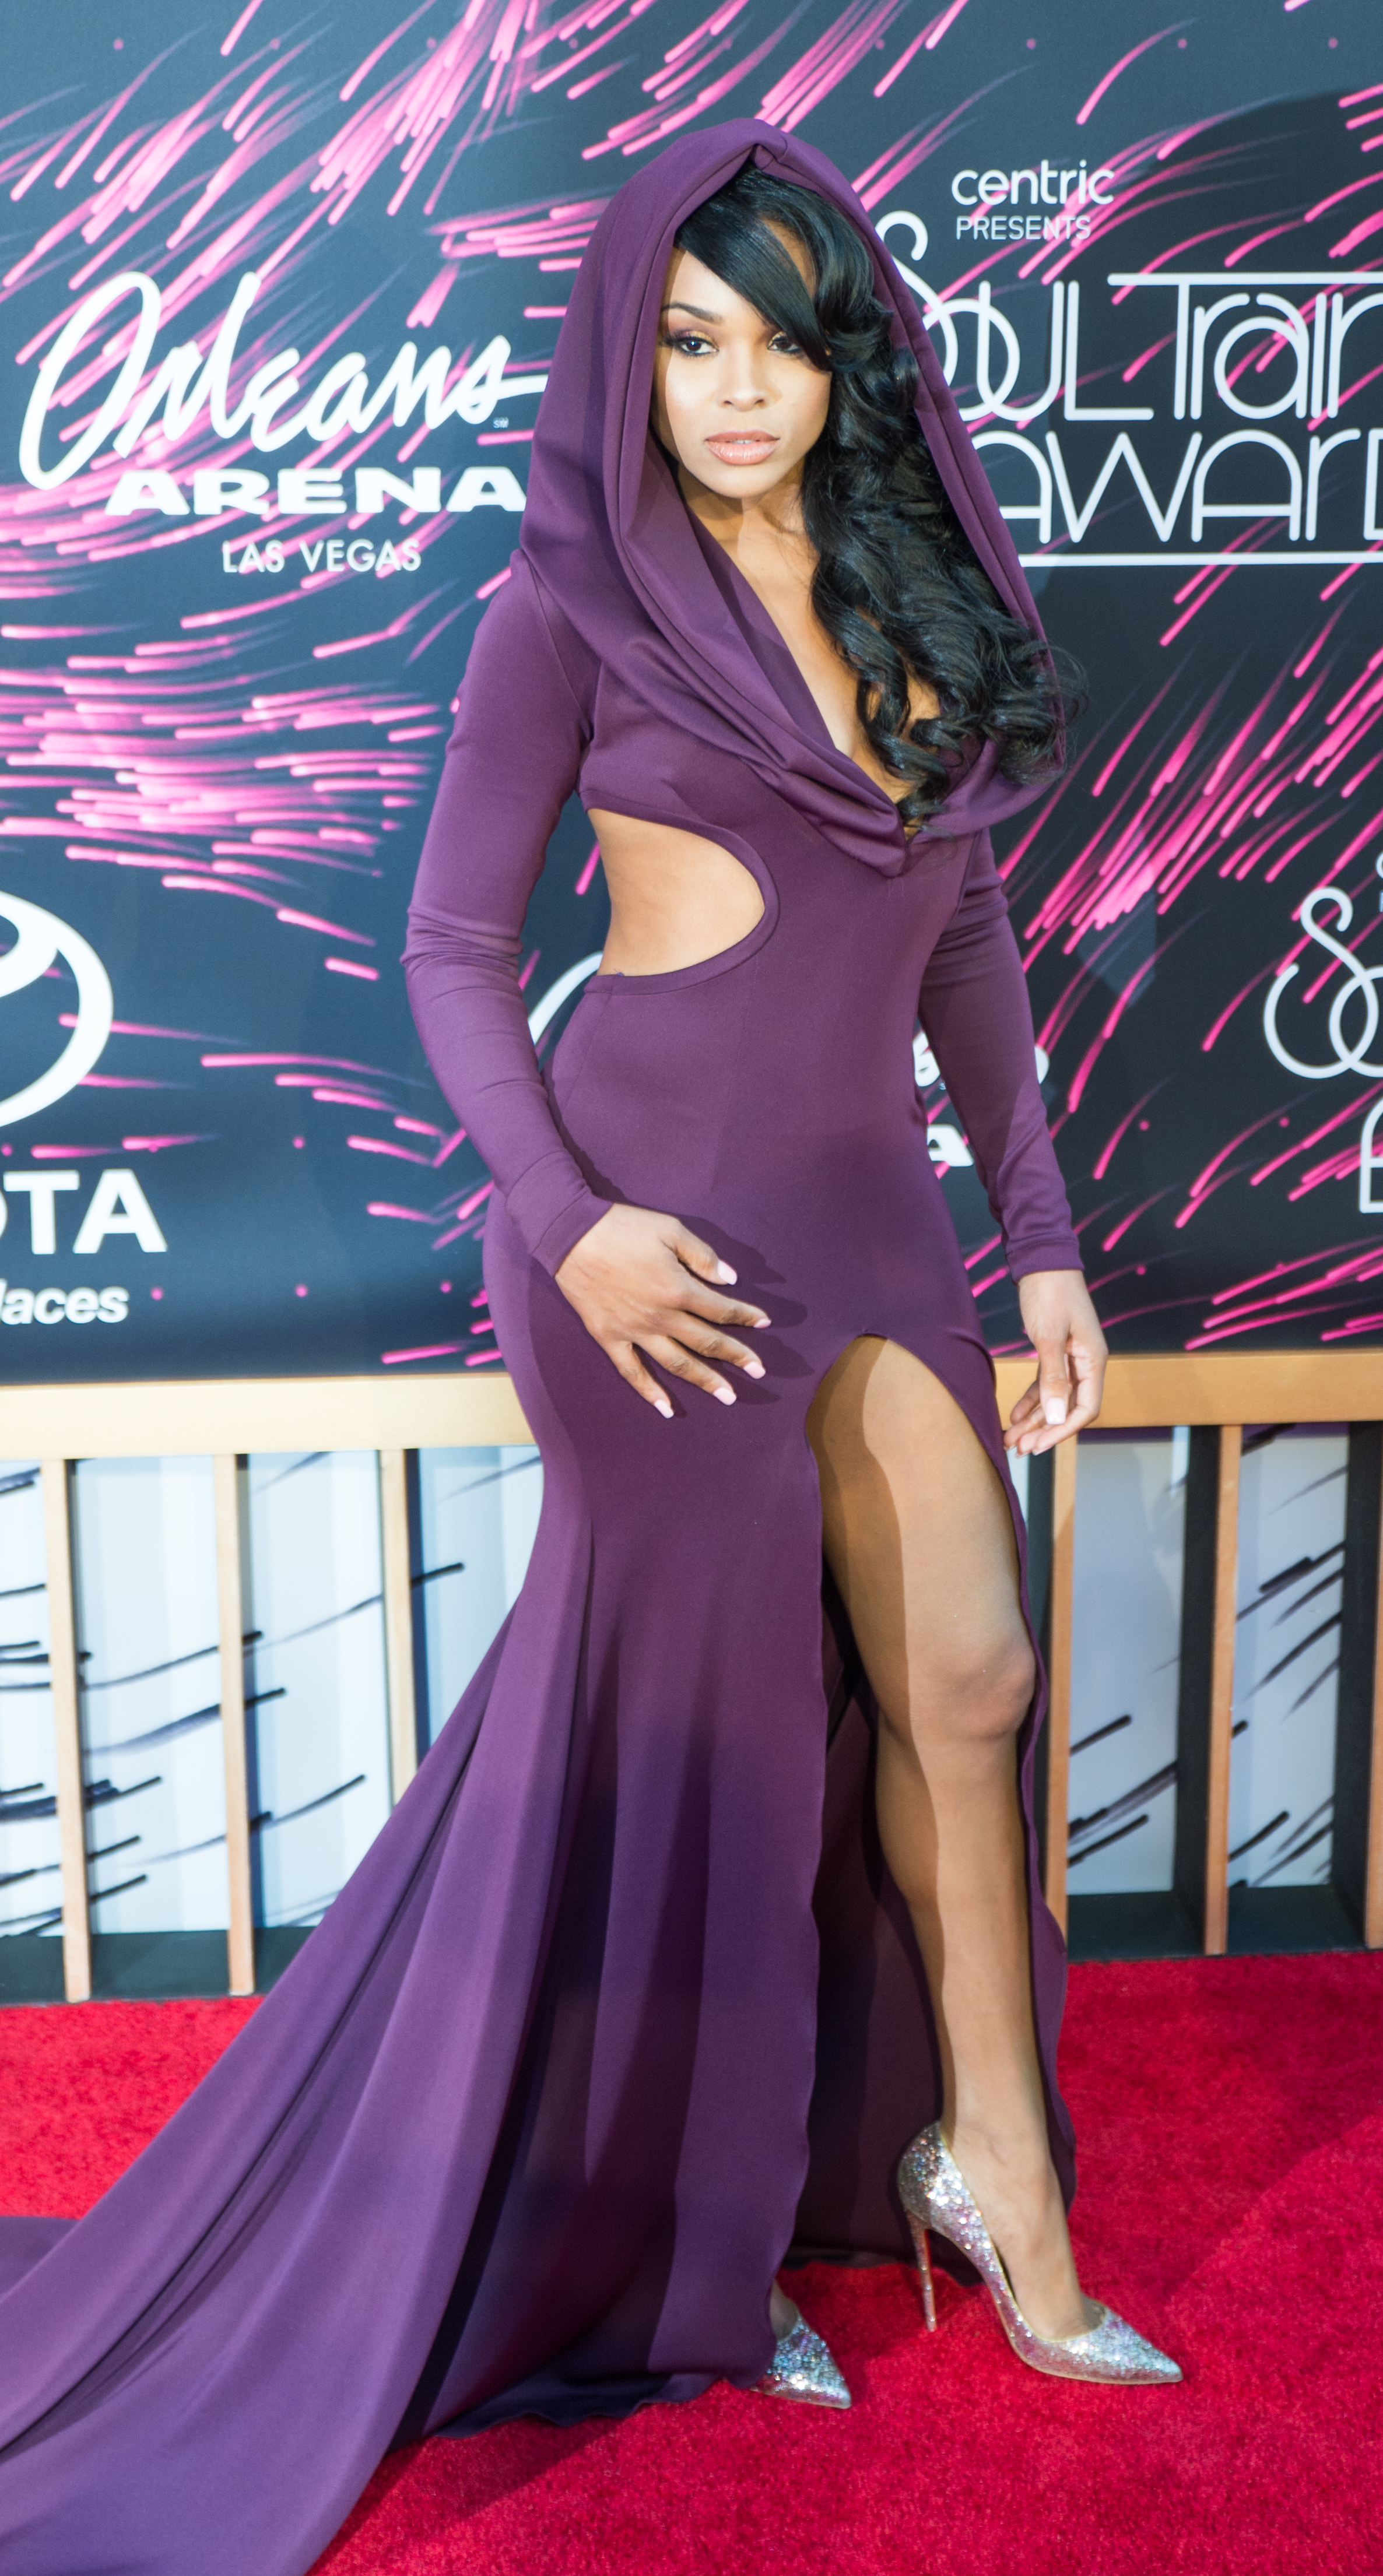 Demetria Mckinney on the red carpet at the Soul Train Awards